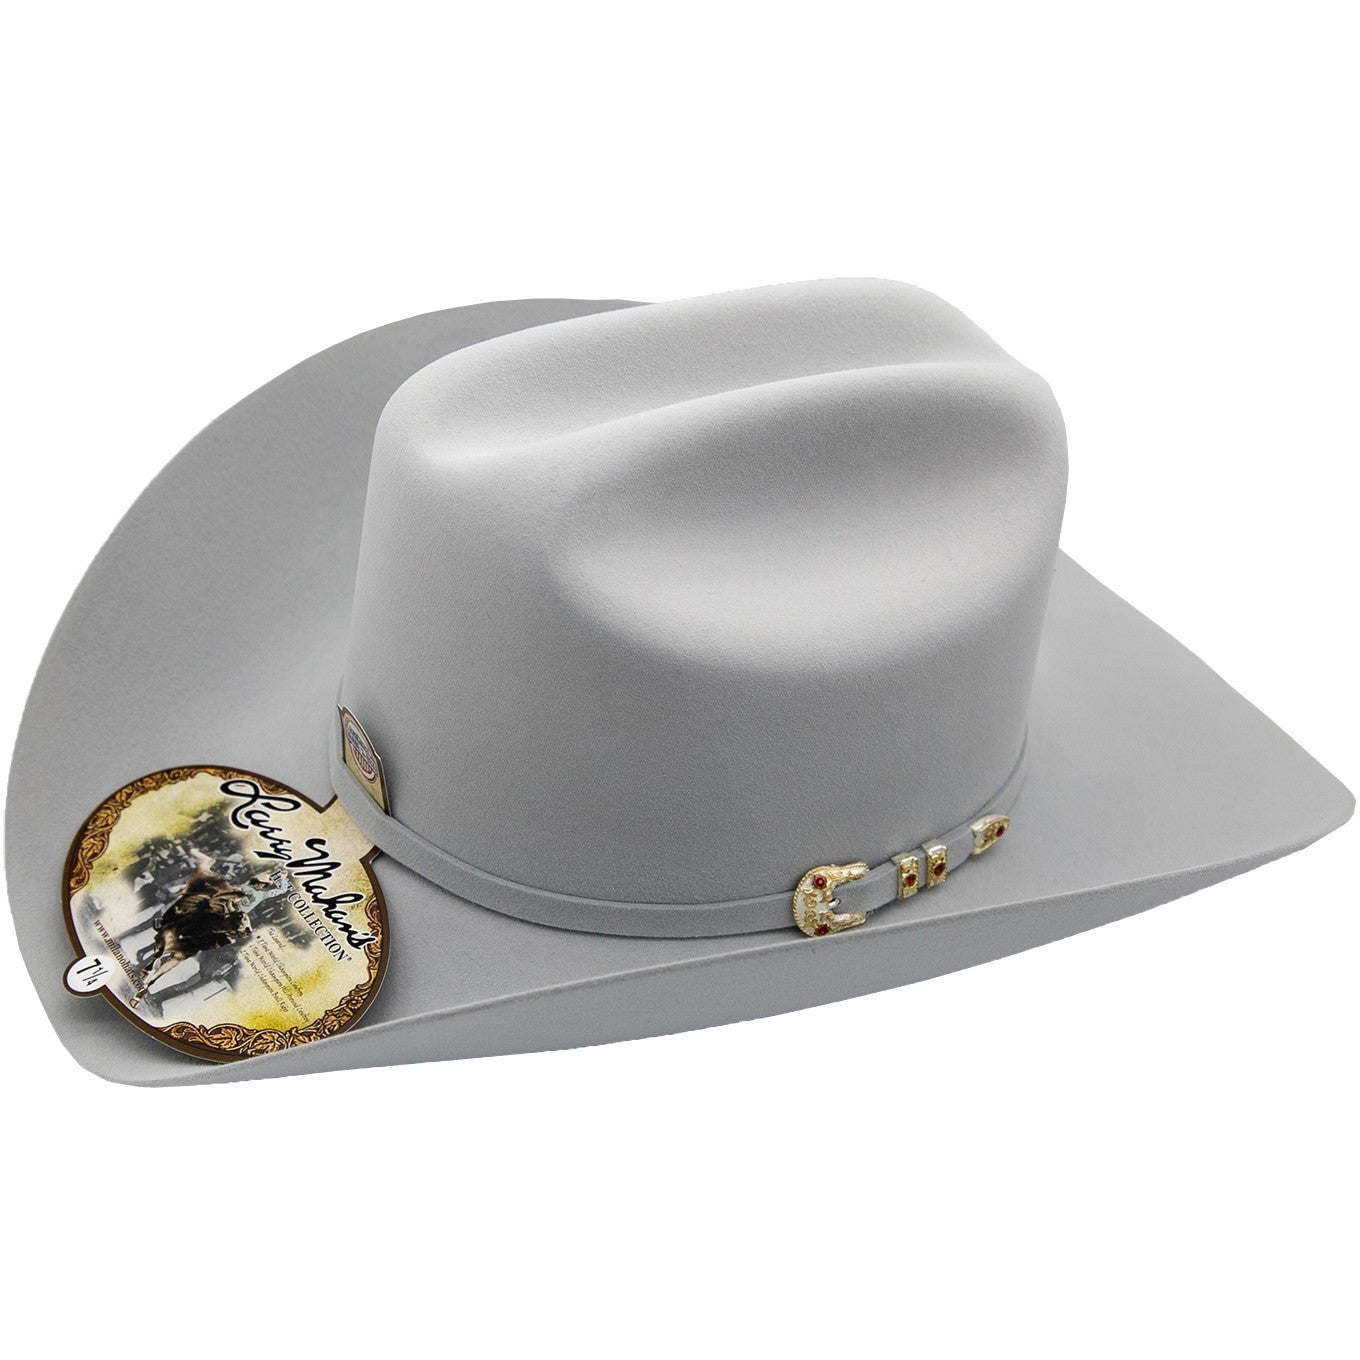 10x Larry Mahan Hat Tucson Platinum Fur Felt Cowboy Hat For Sale ... ca04aafc2ab